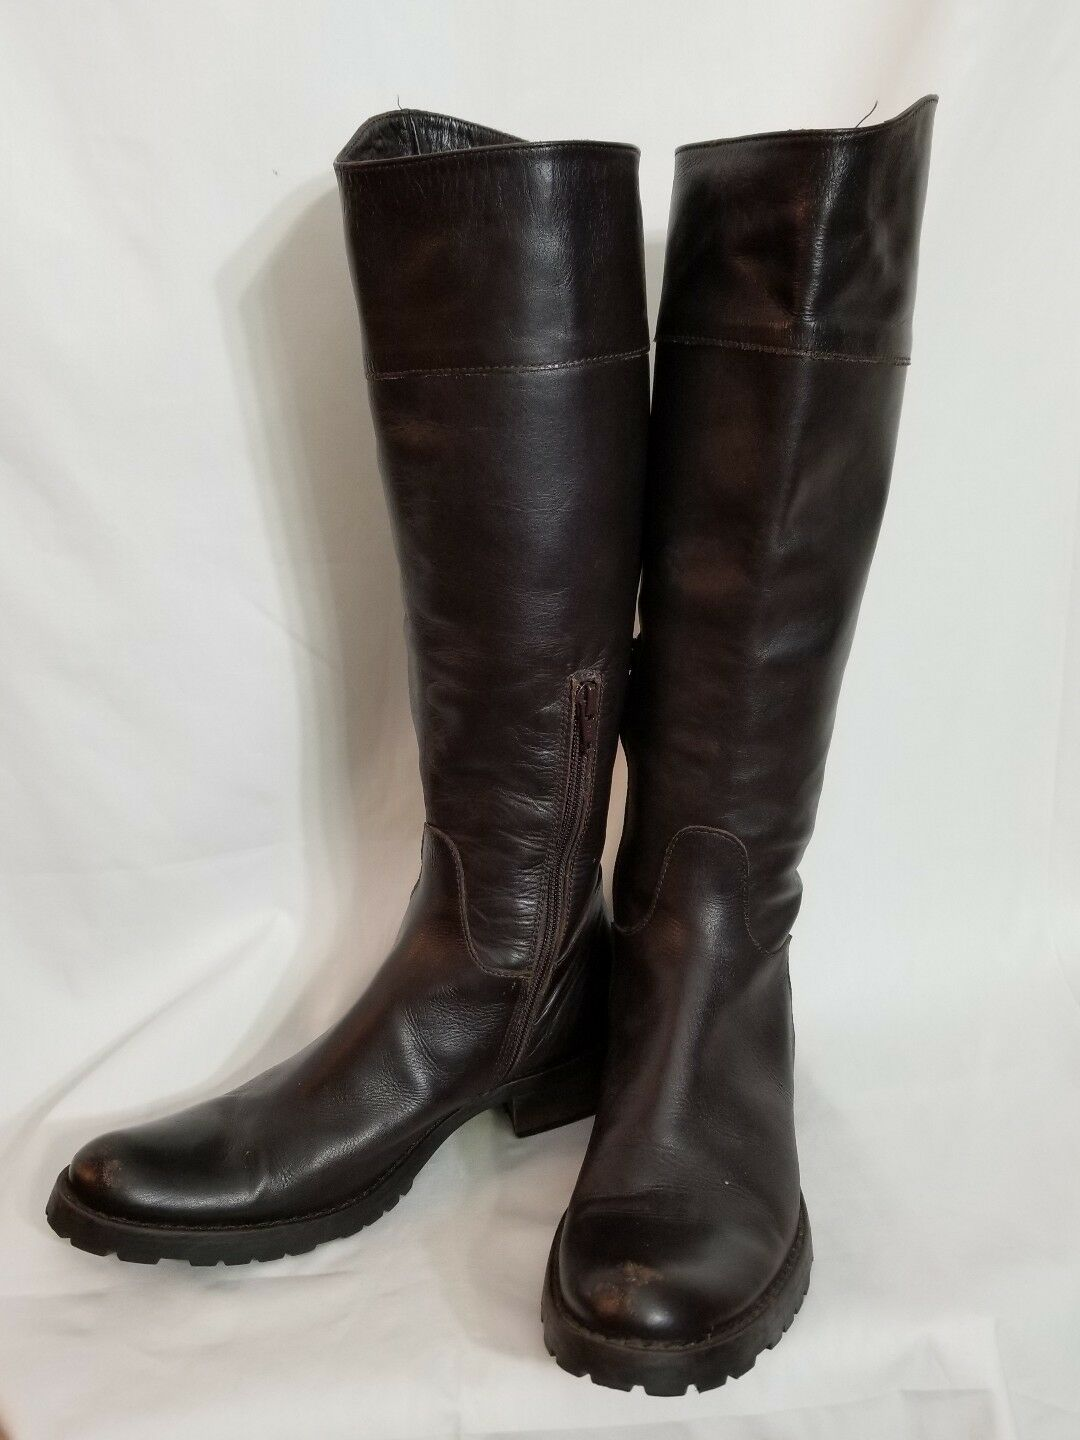 JFK Knee Stiefel braun soft leather Größe 36.5 made in